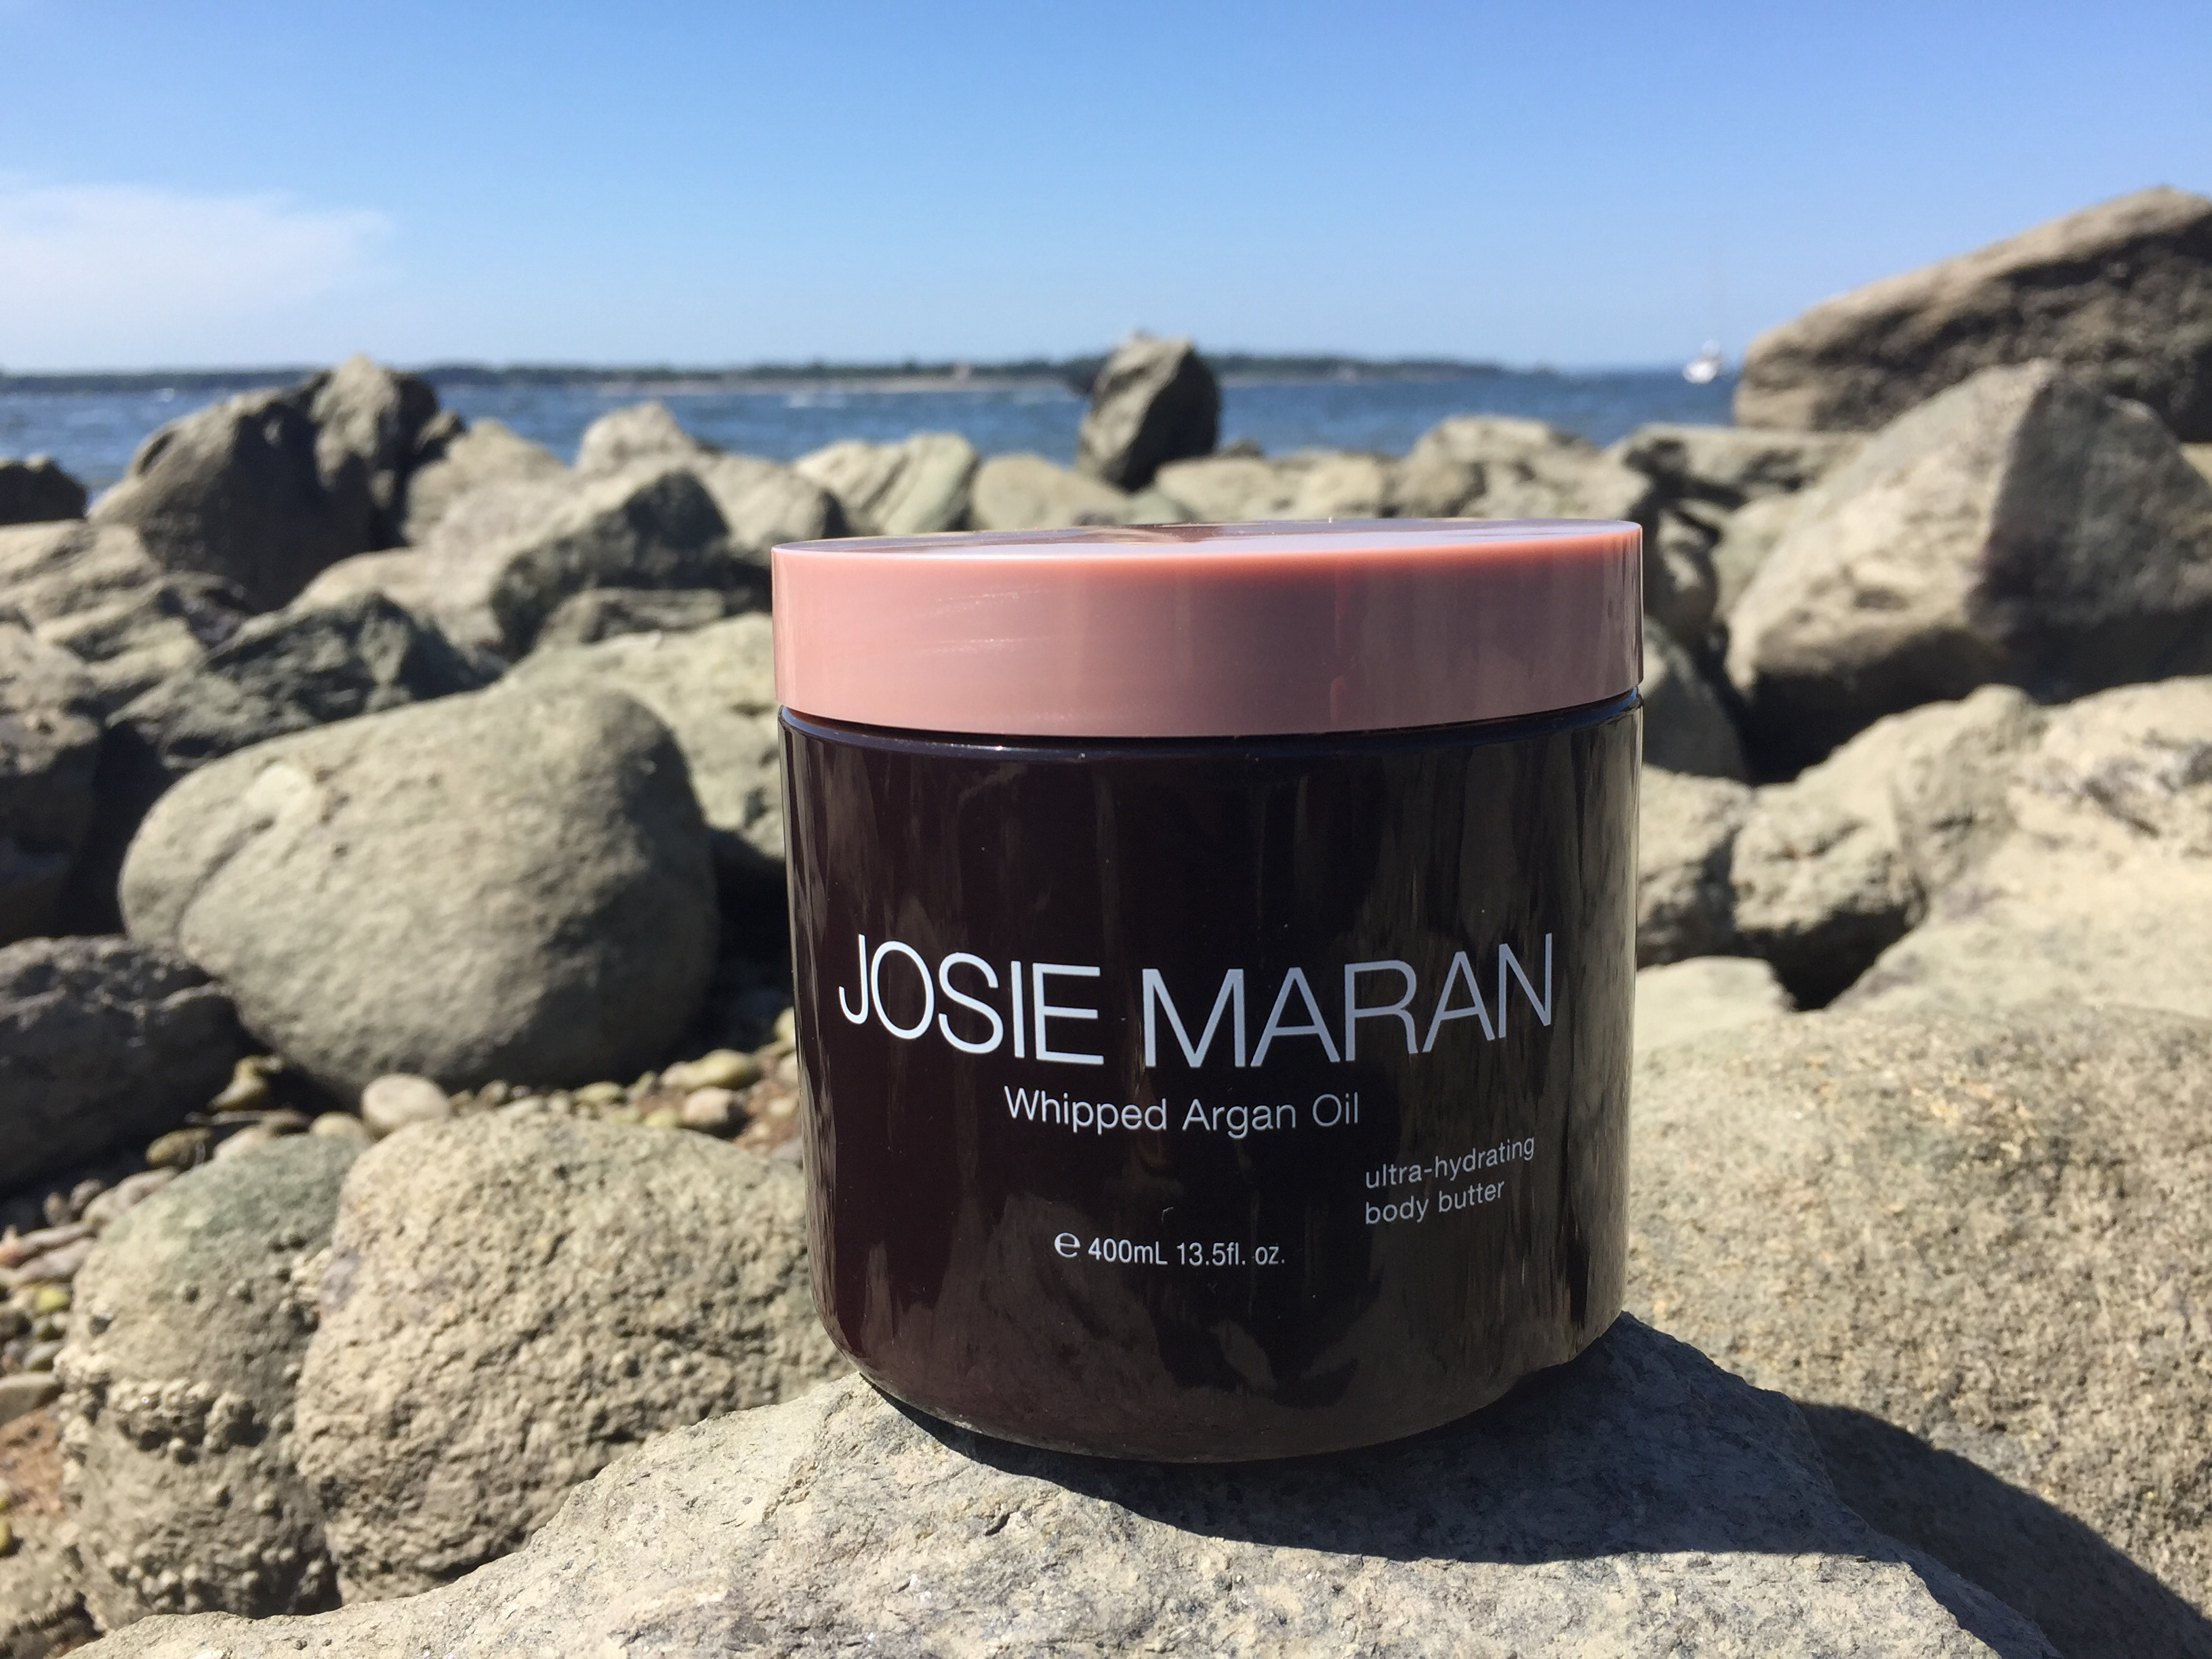 Josie Maran's Whipped Argan Oil Ultra-Hydrating Body Butter